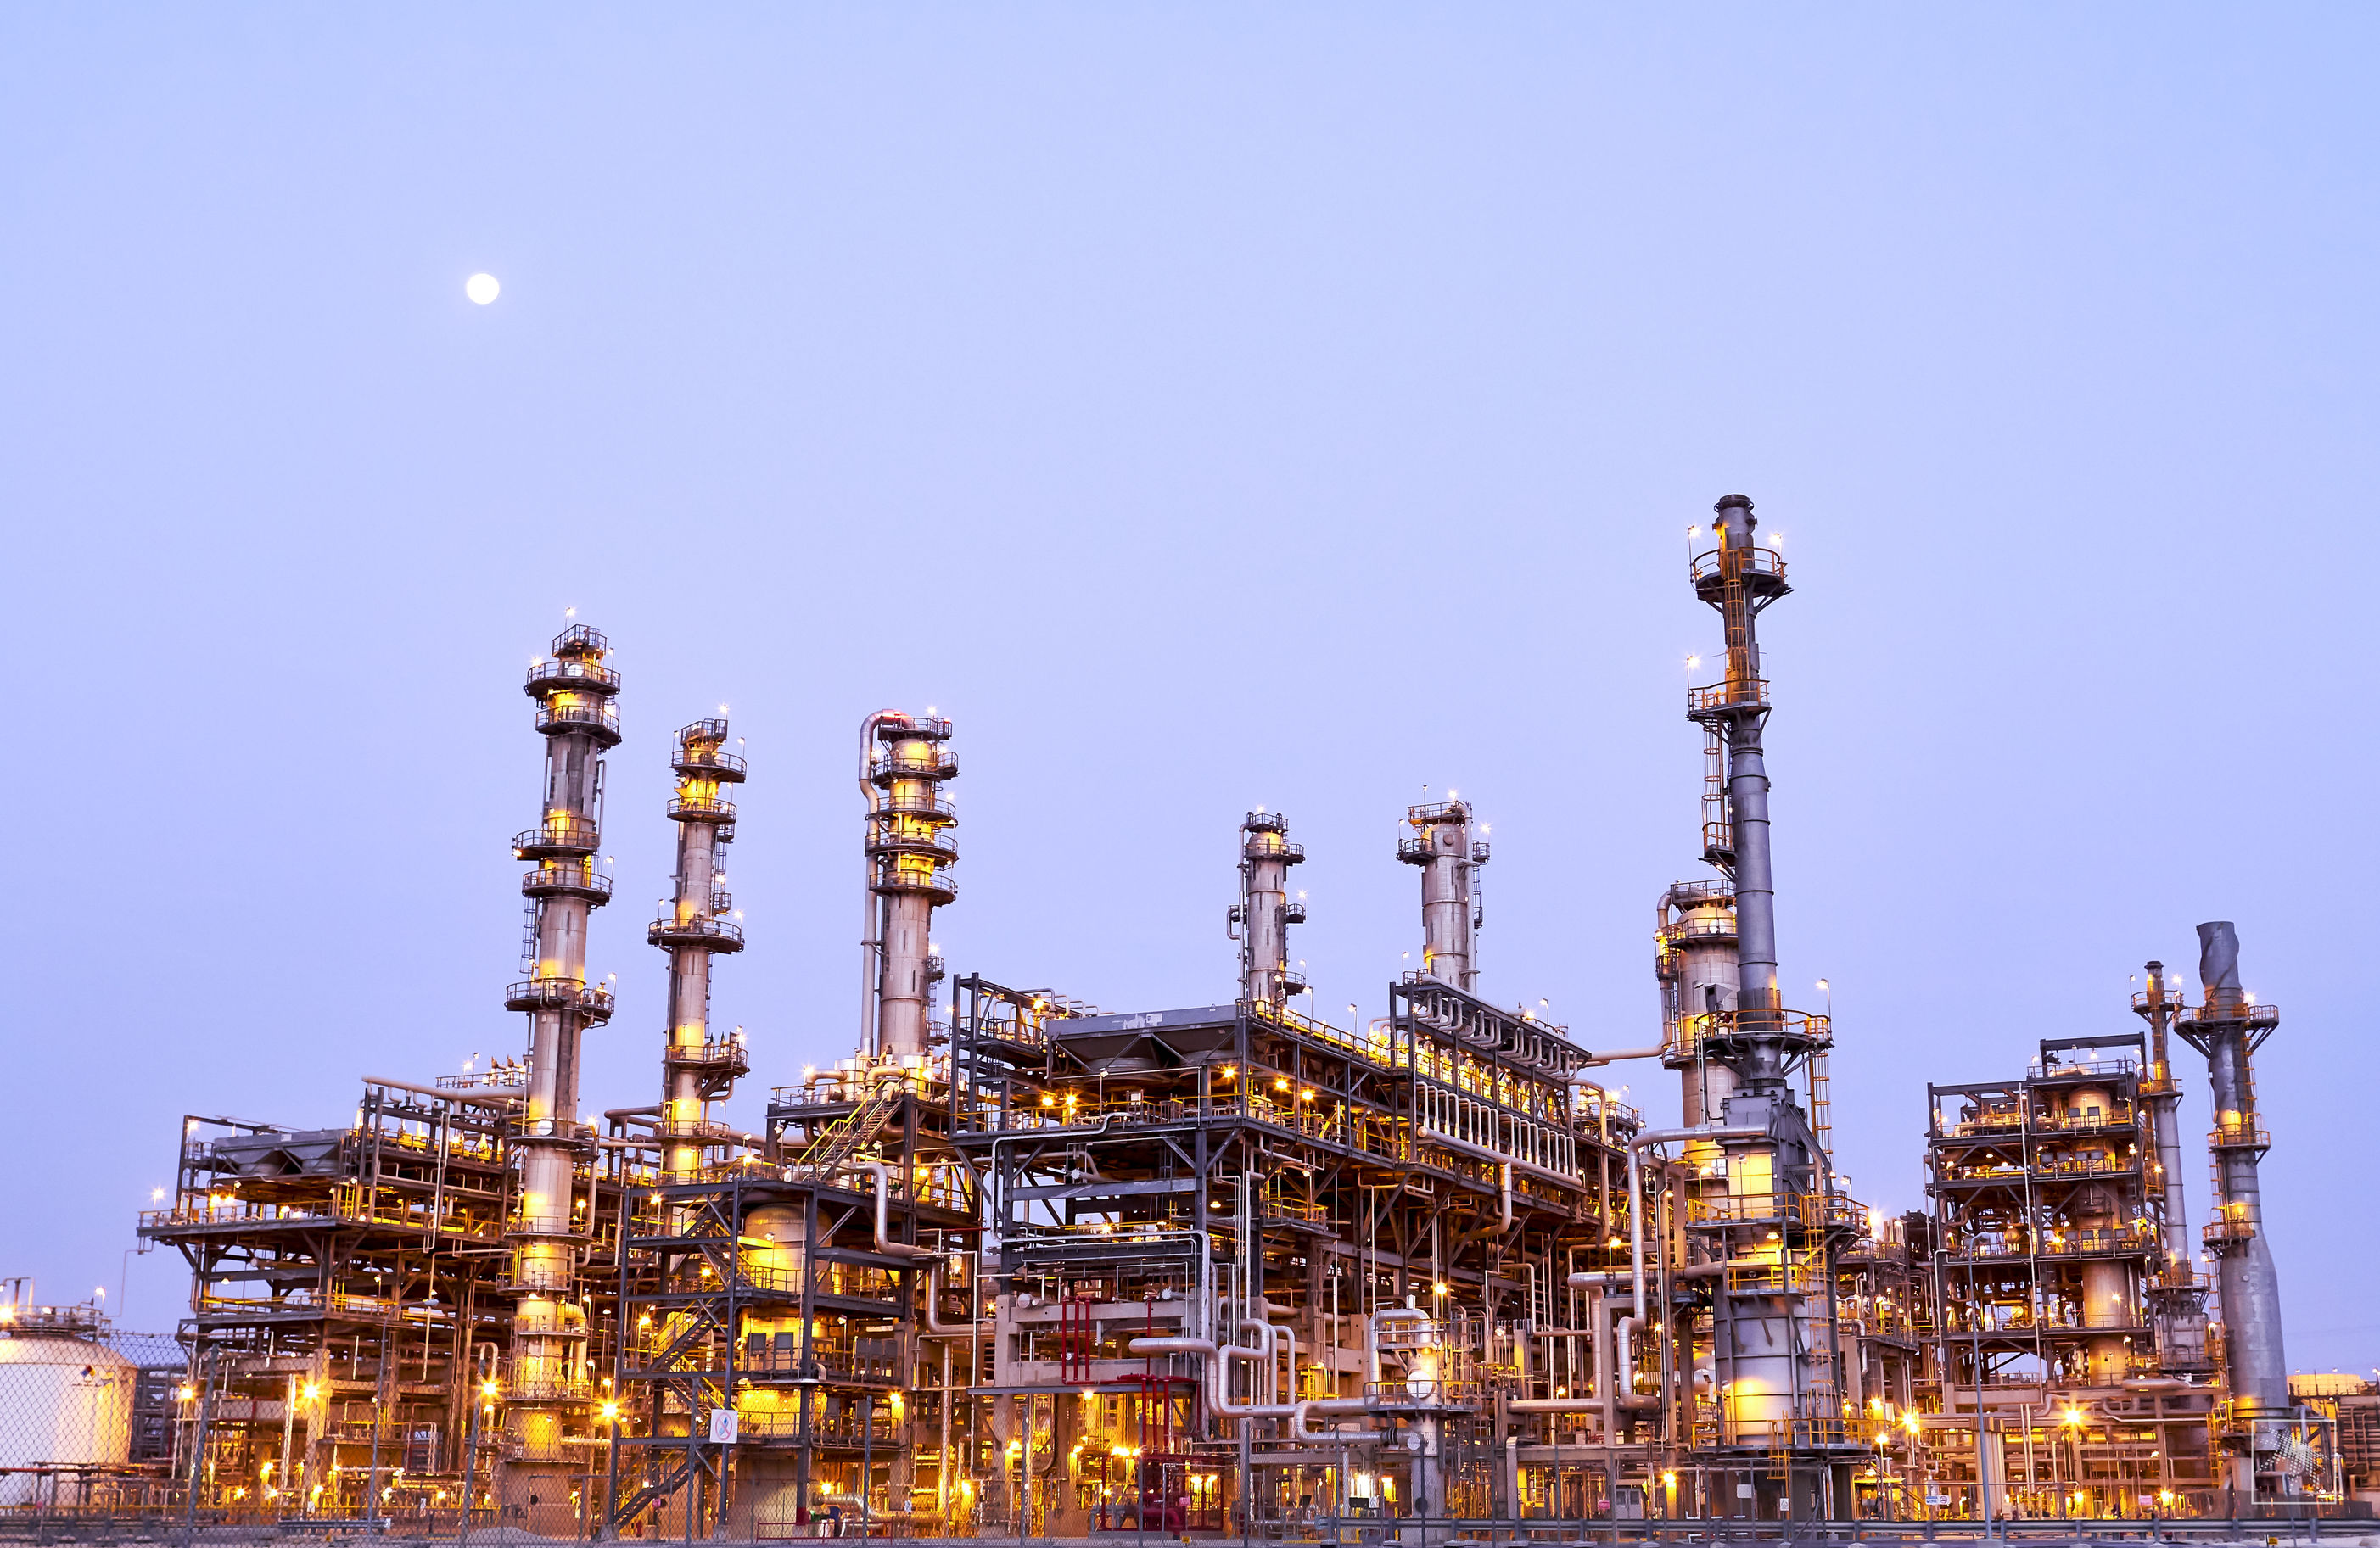 Saudi Aramco to make big investment in Reliance petrochemicals